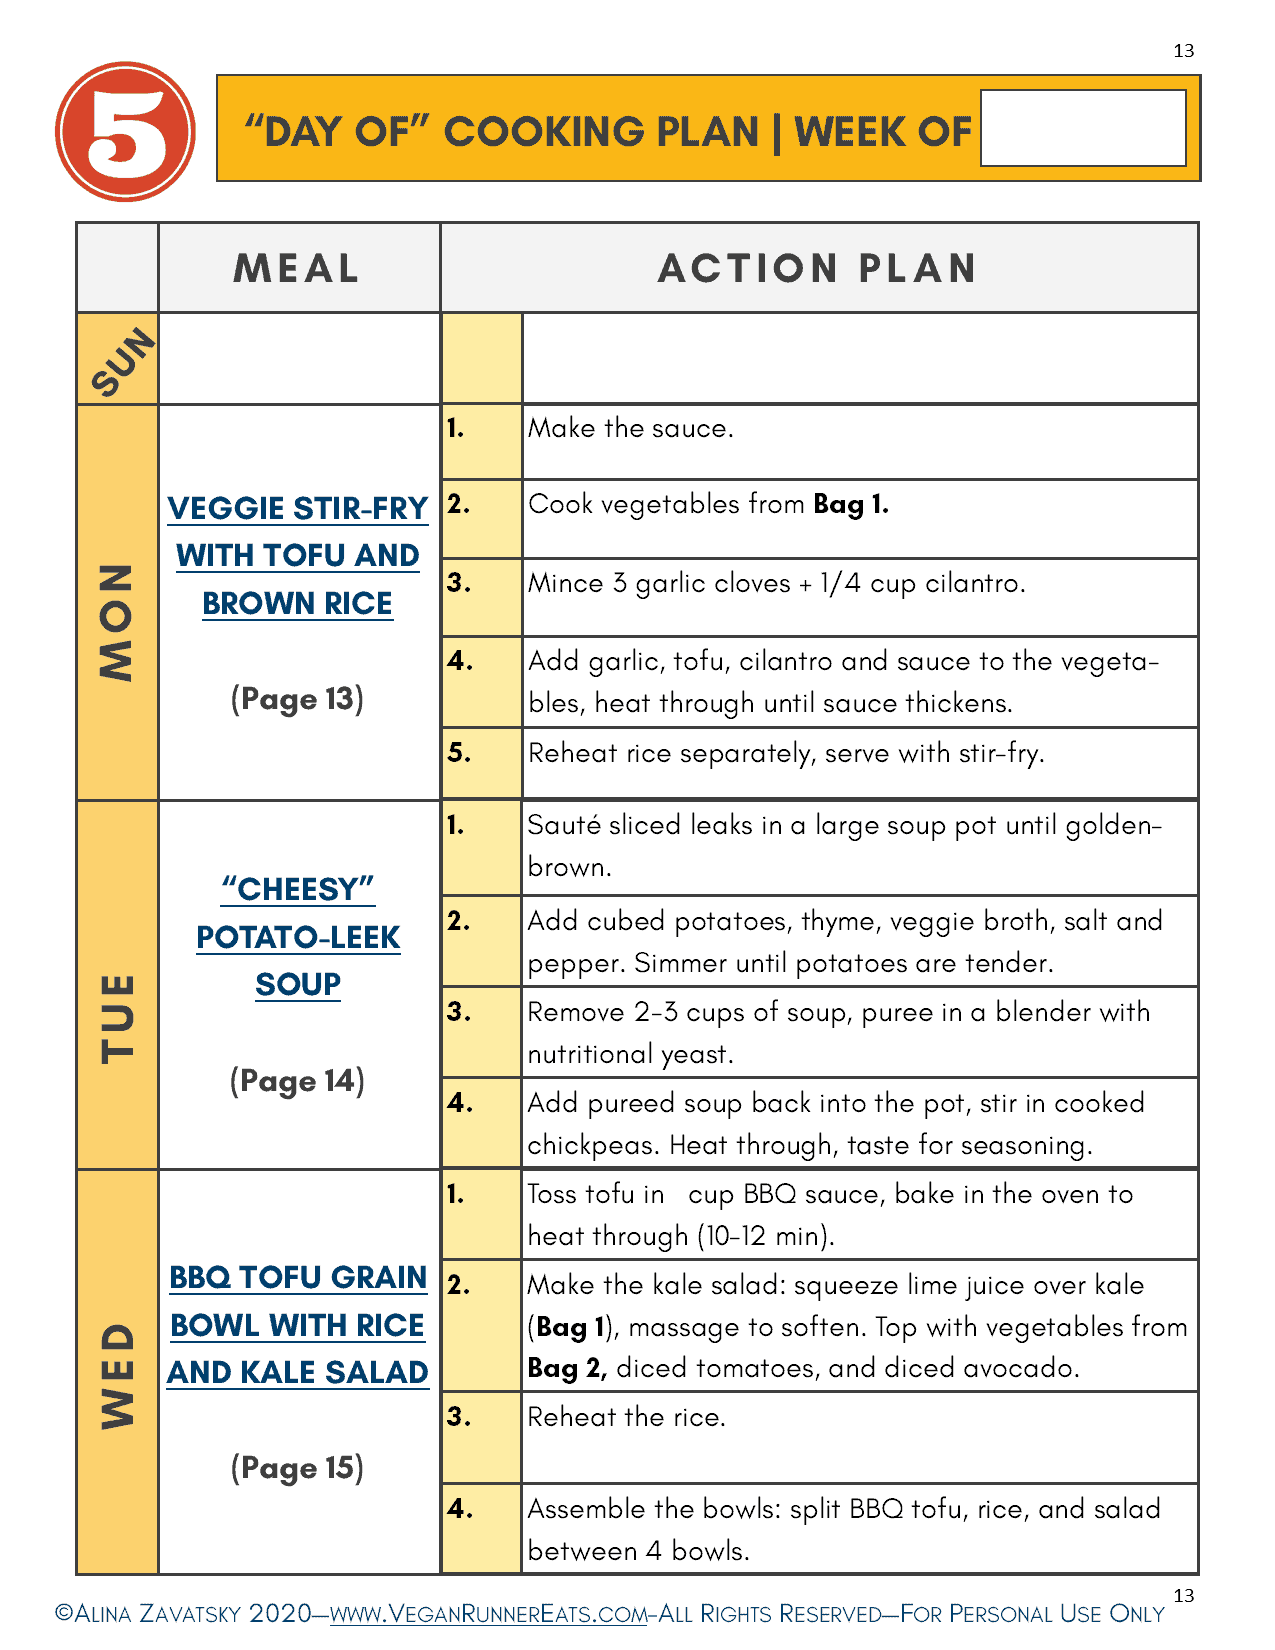 Day of Cooking Plan